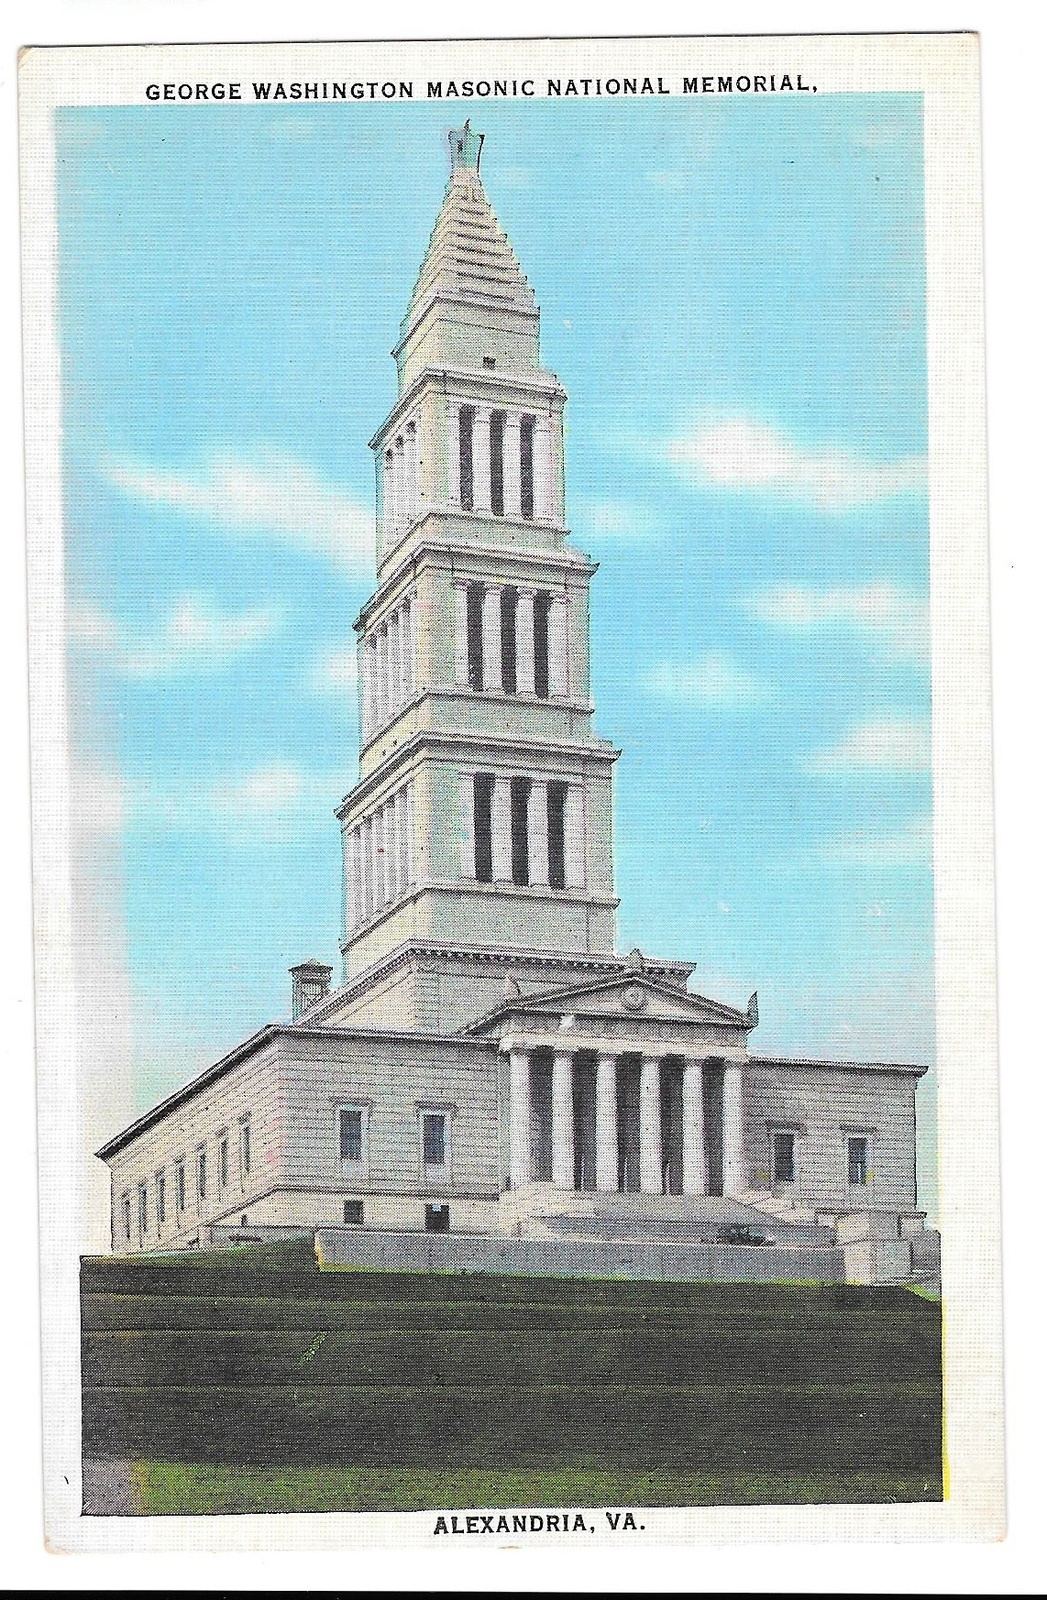 99 br 1925 1bx va alexandria george washington masonic natl memorial